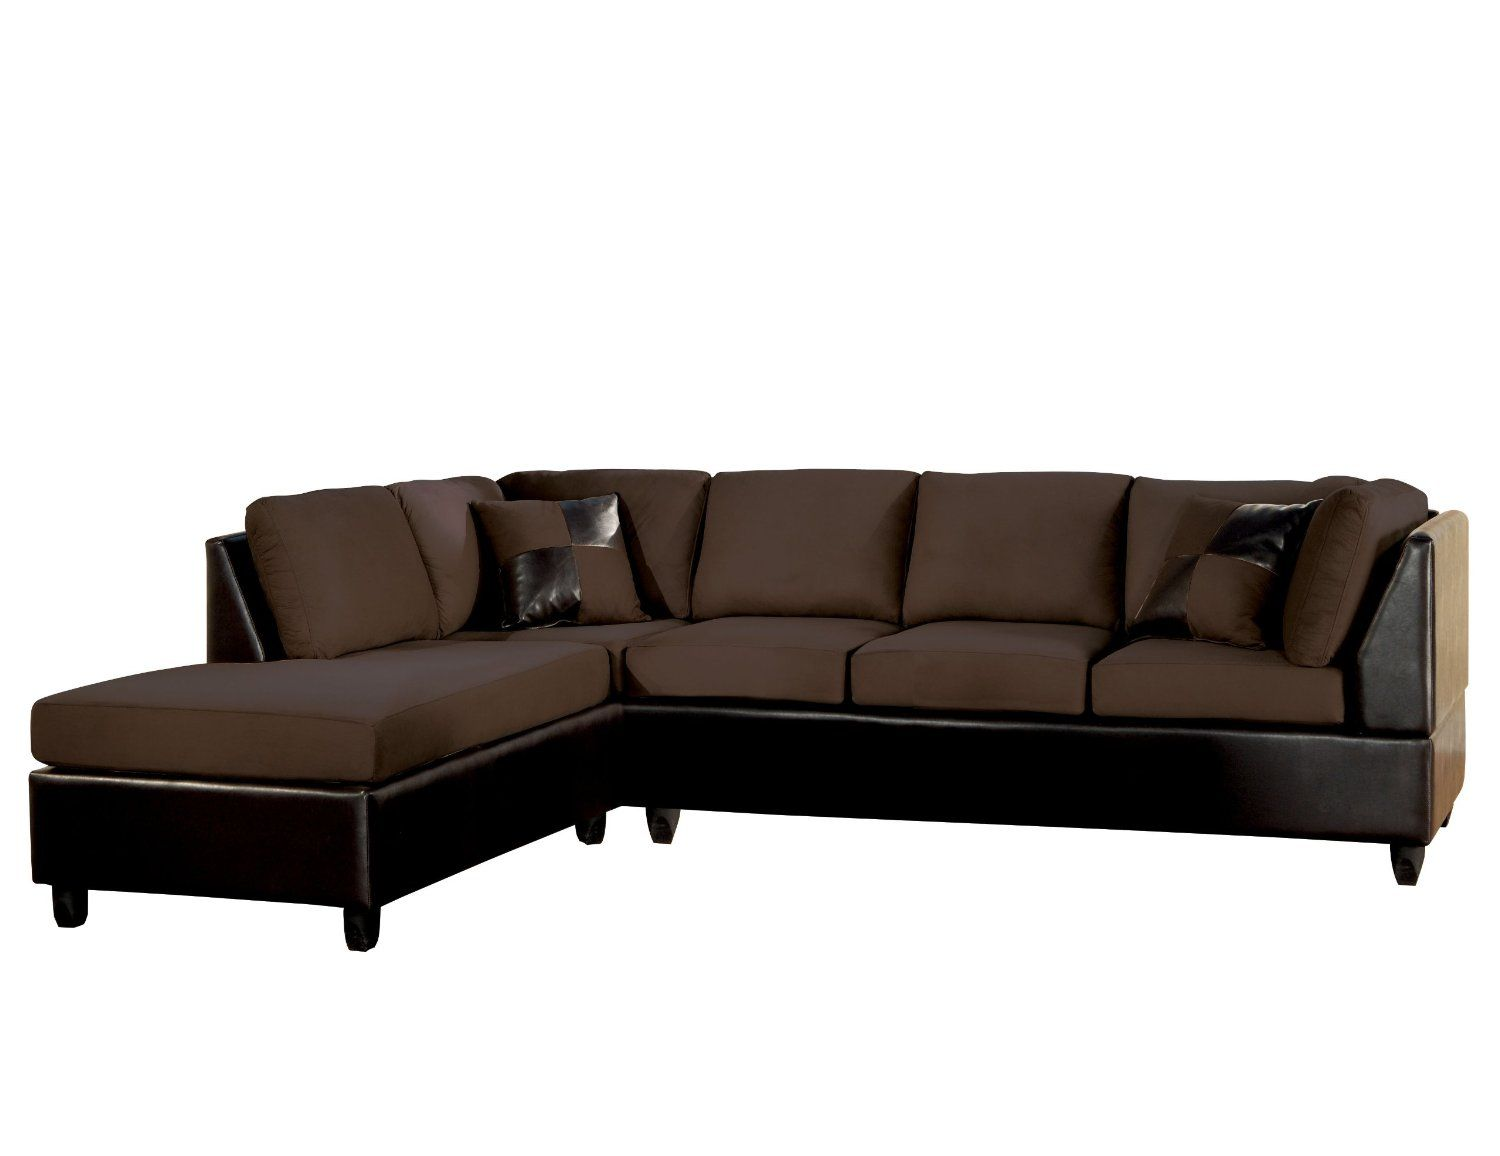 Elegant Sectional Sleeper Sofasuitable For Your Fashion